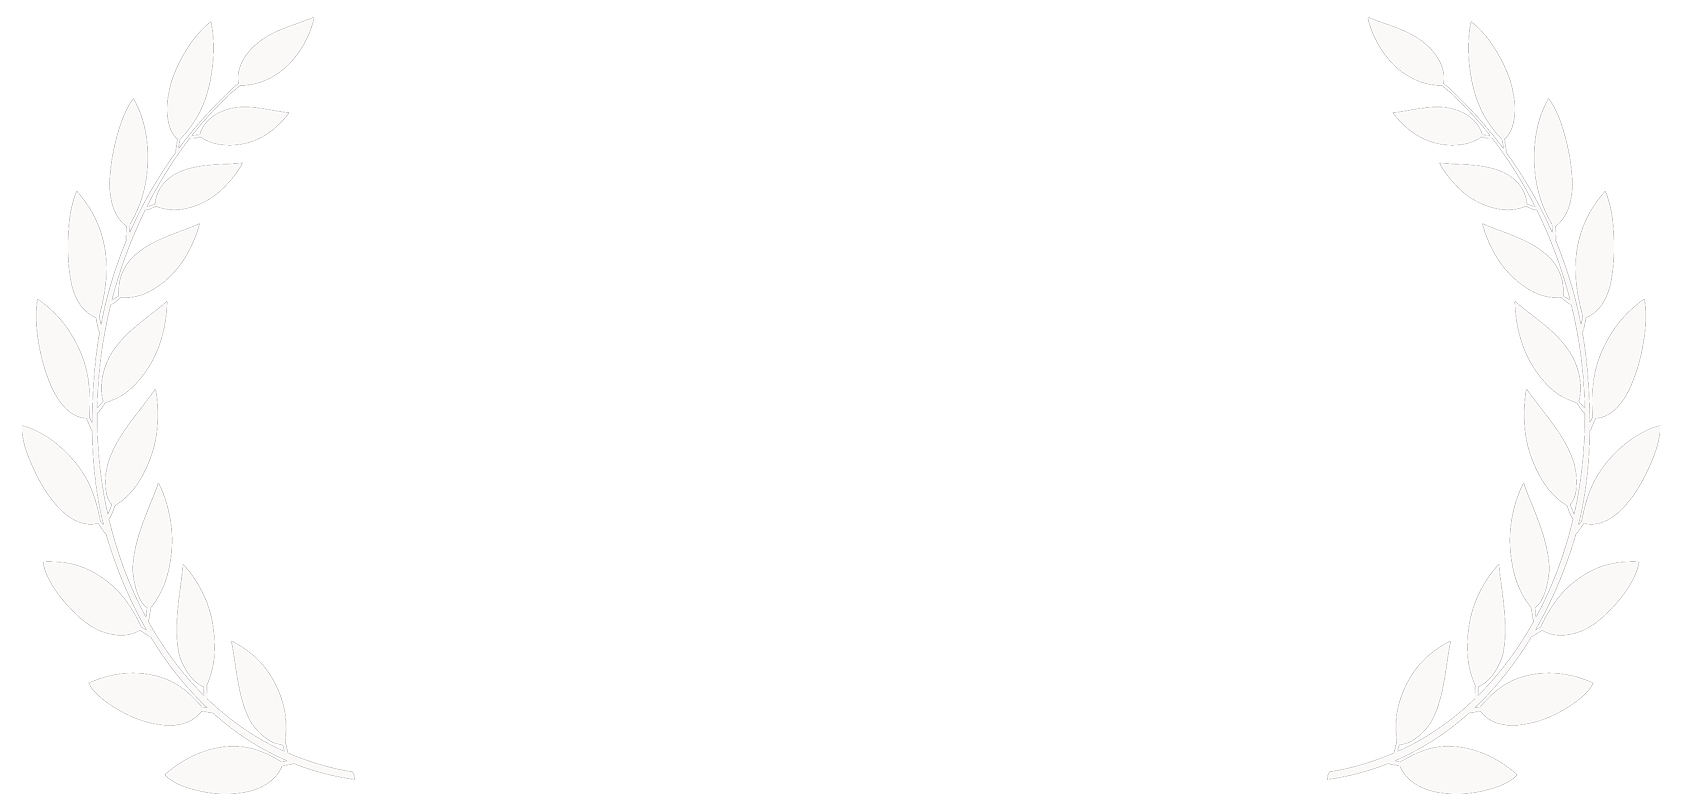 PIXIE AWARDS.png